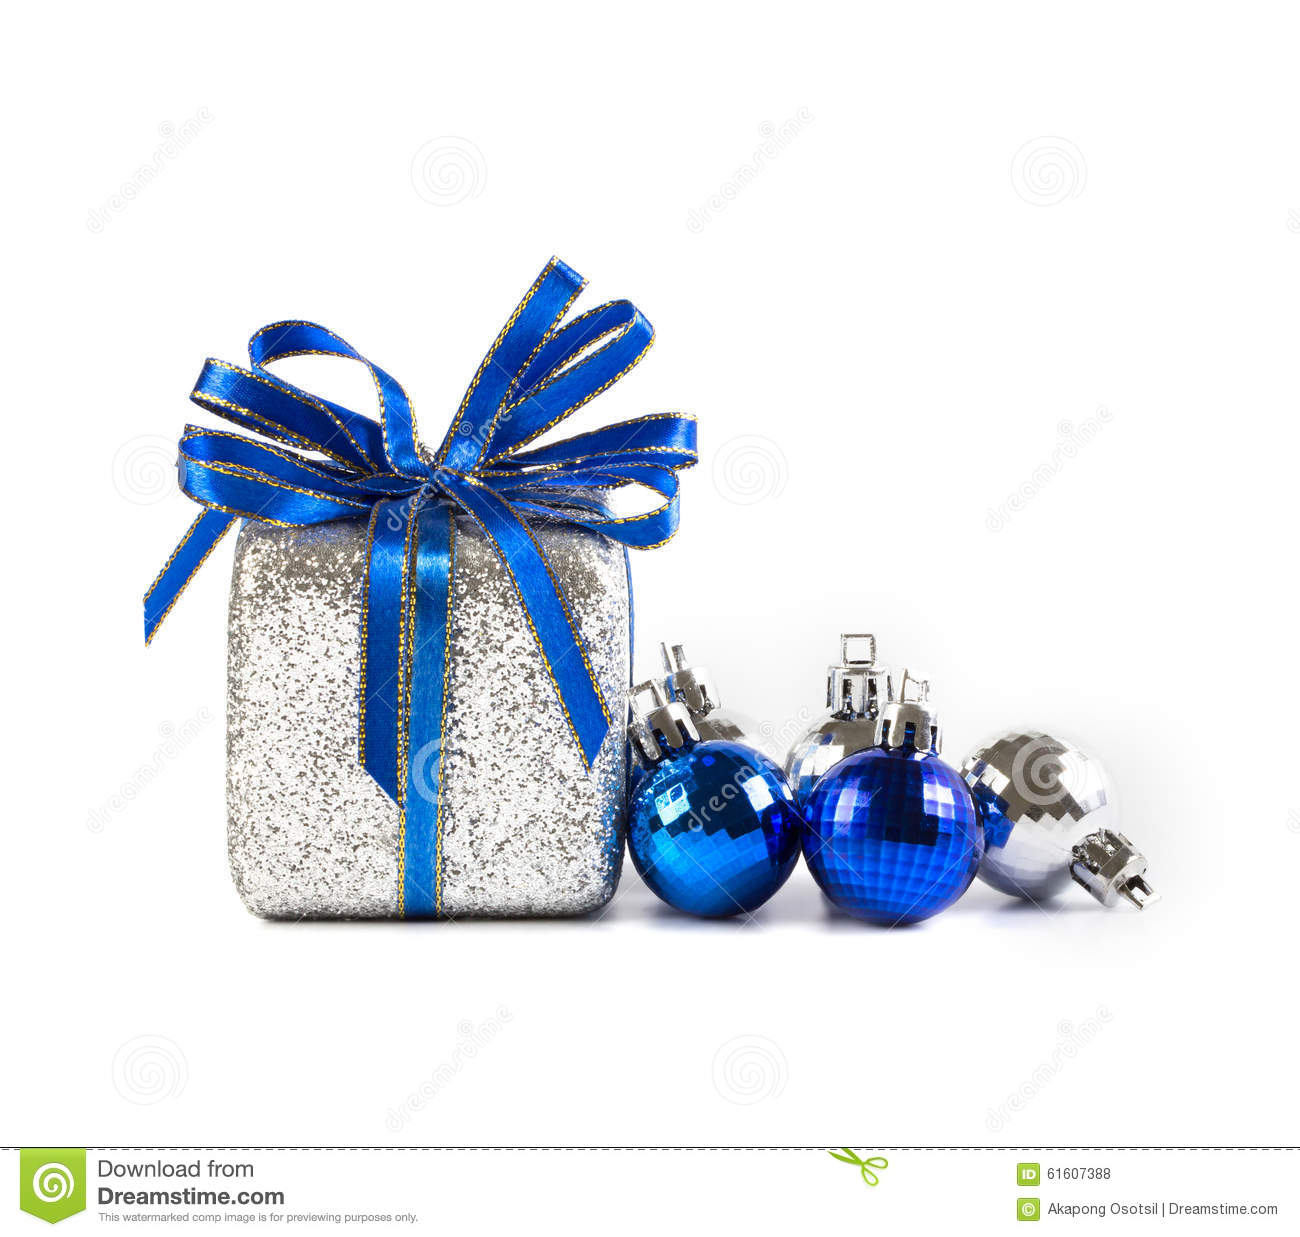 Silver and blue Christmas balls and gifts on white background